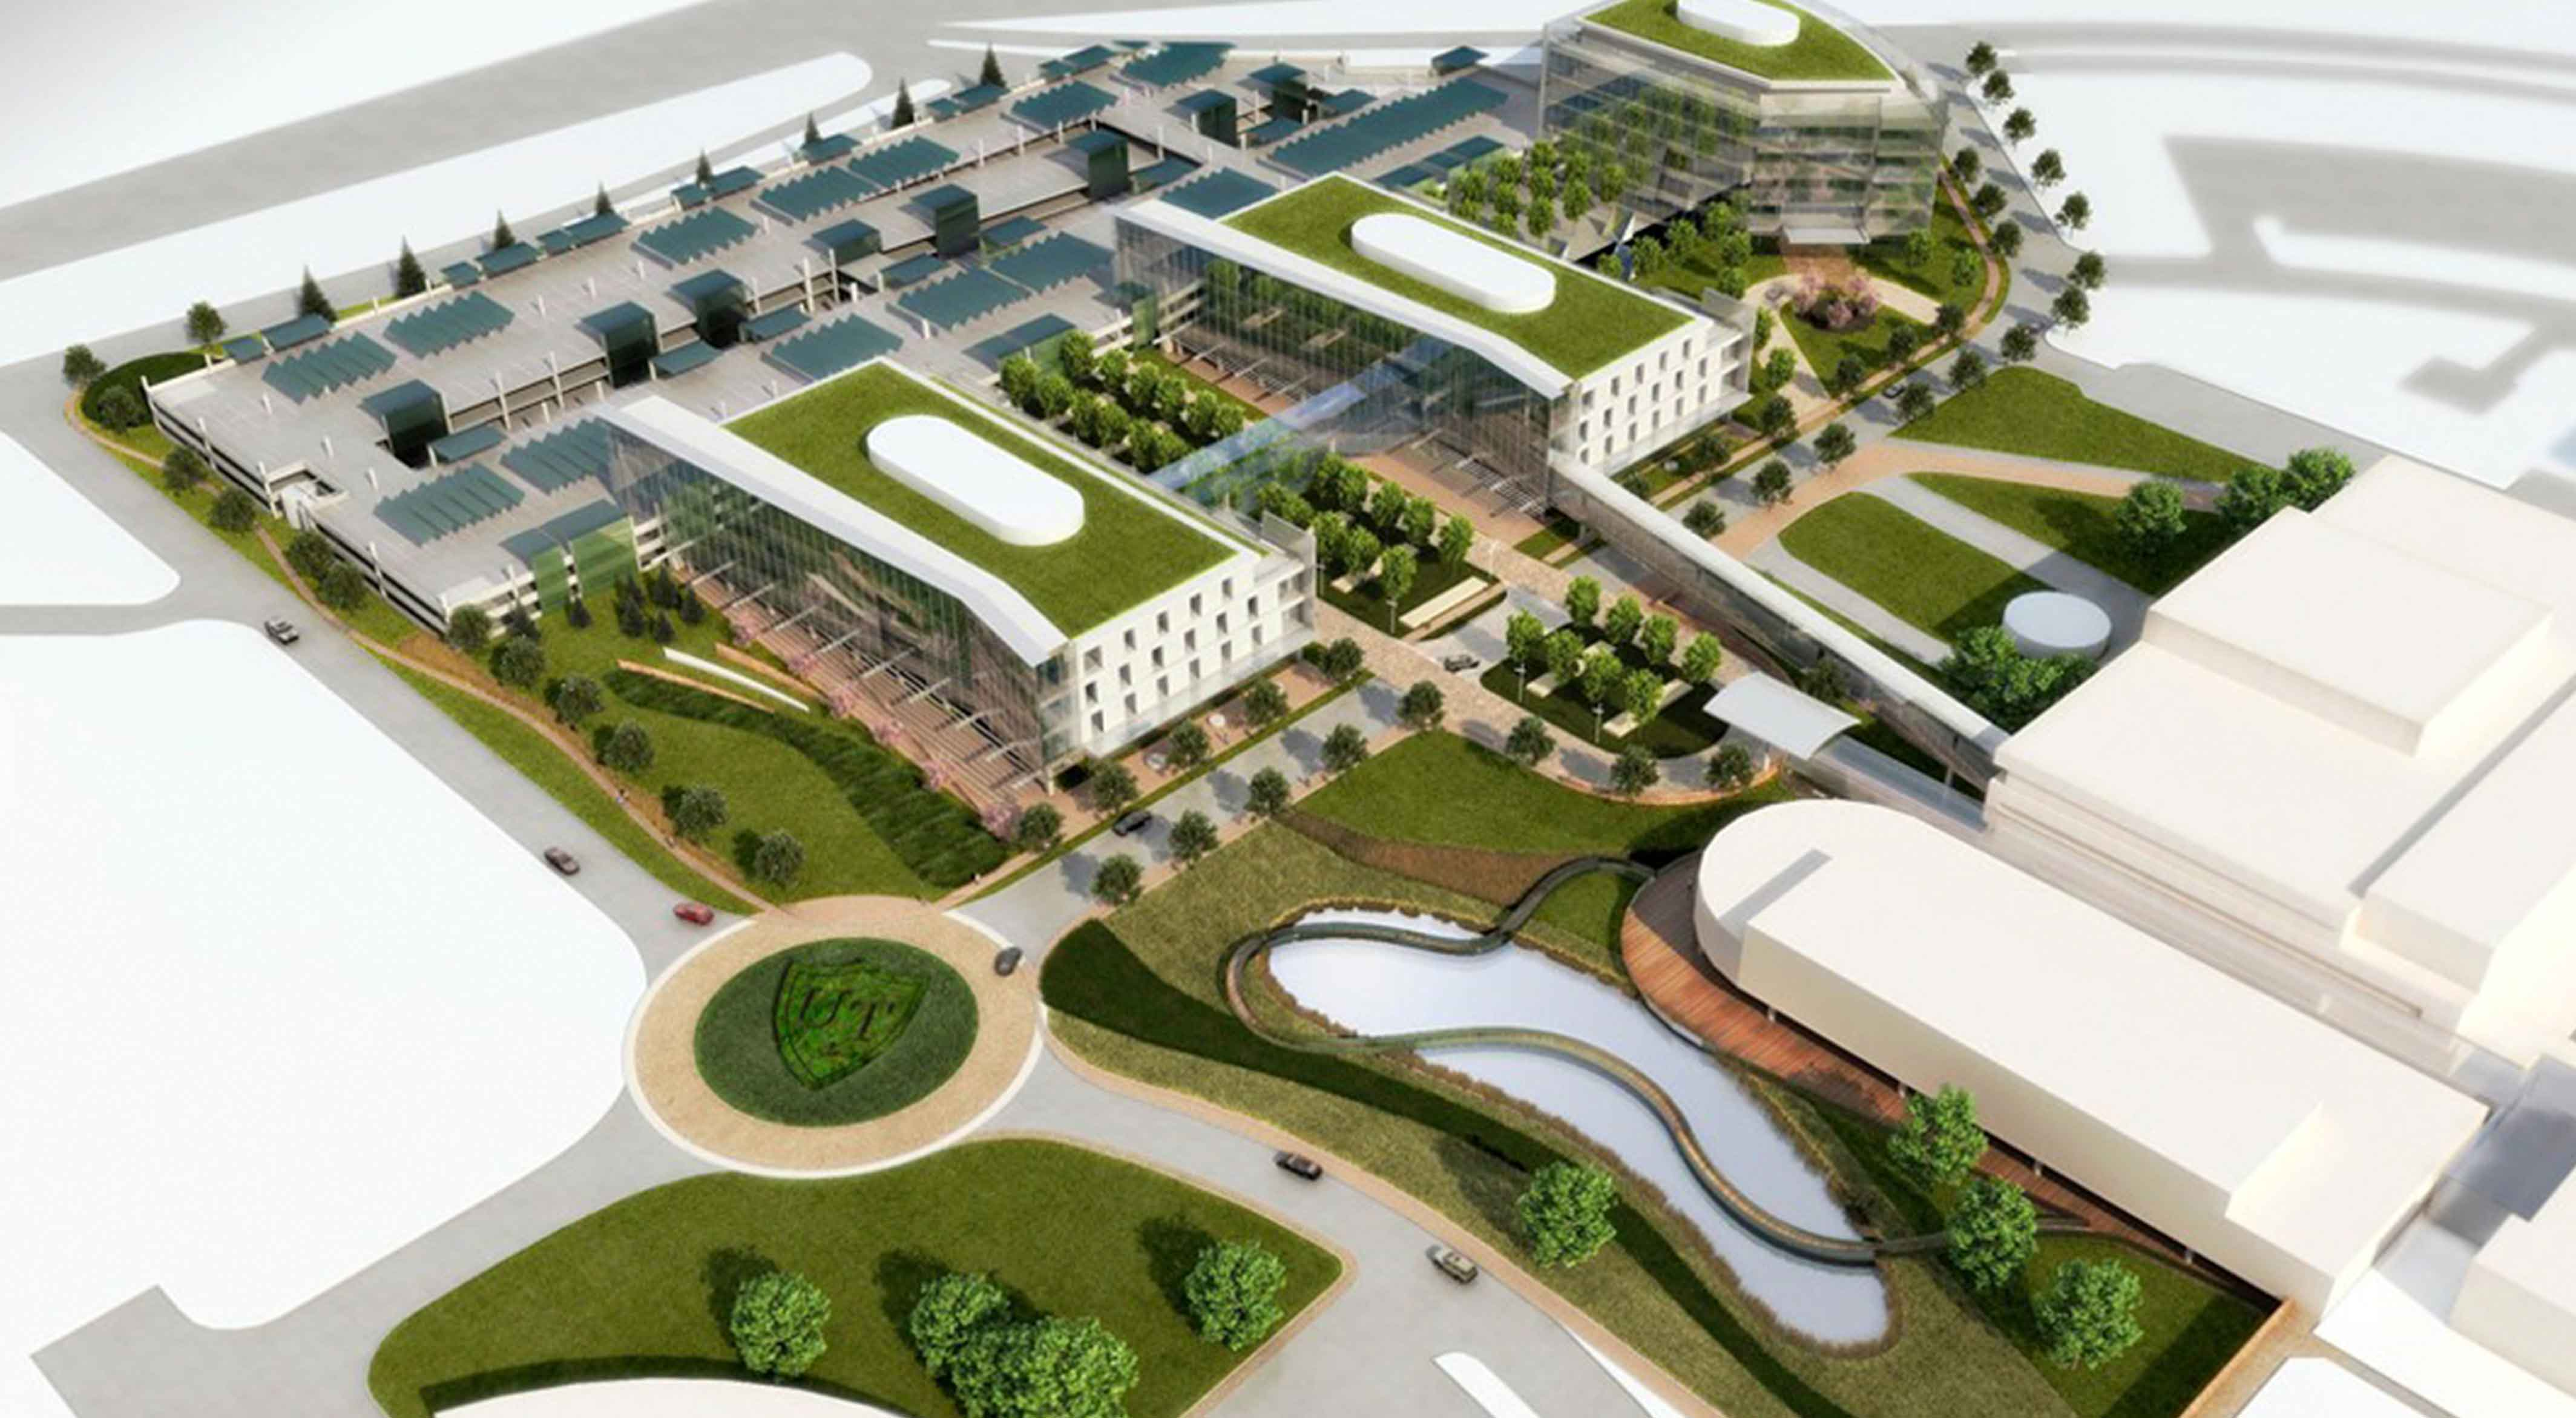 A campus comes to life using 3D renderings